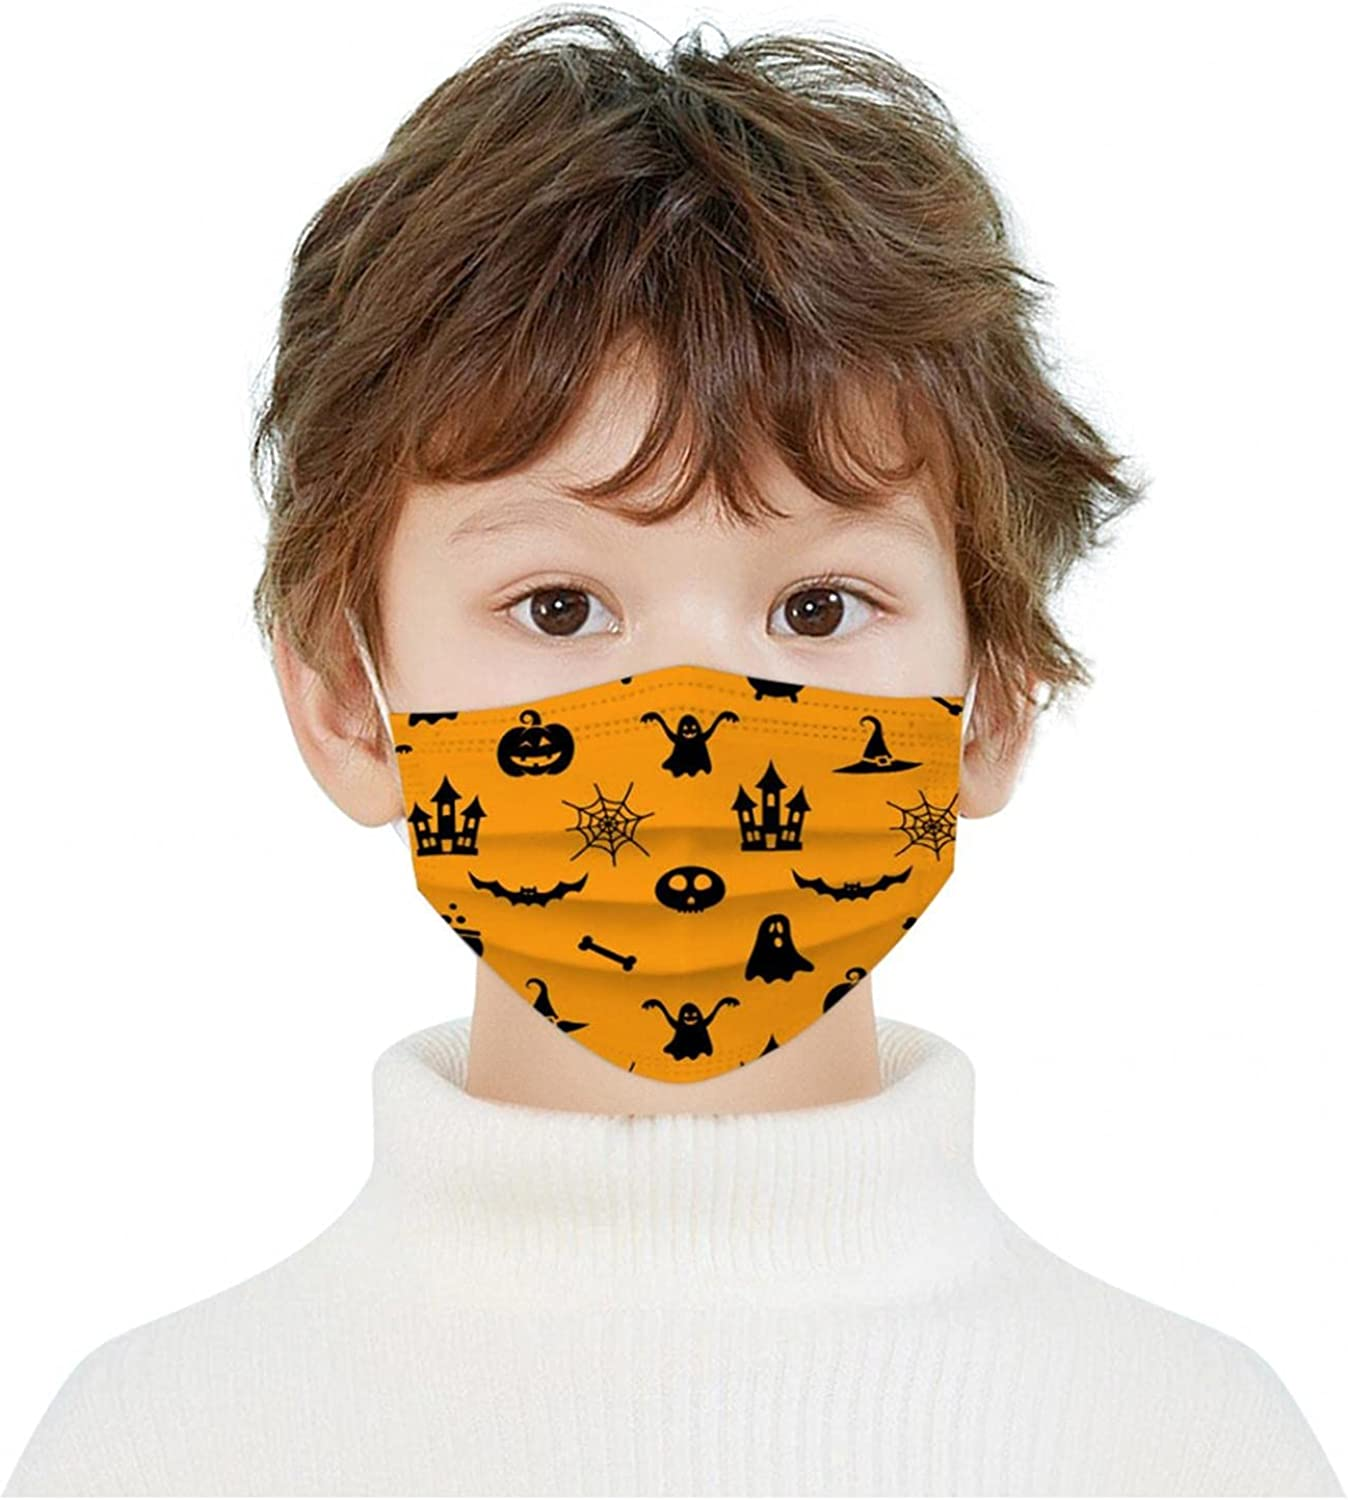 eNGTGK Kids Disposable Face p 3 𝕄𝔸𝕊𝕂 San Diego Mall Free shipping / New